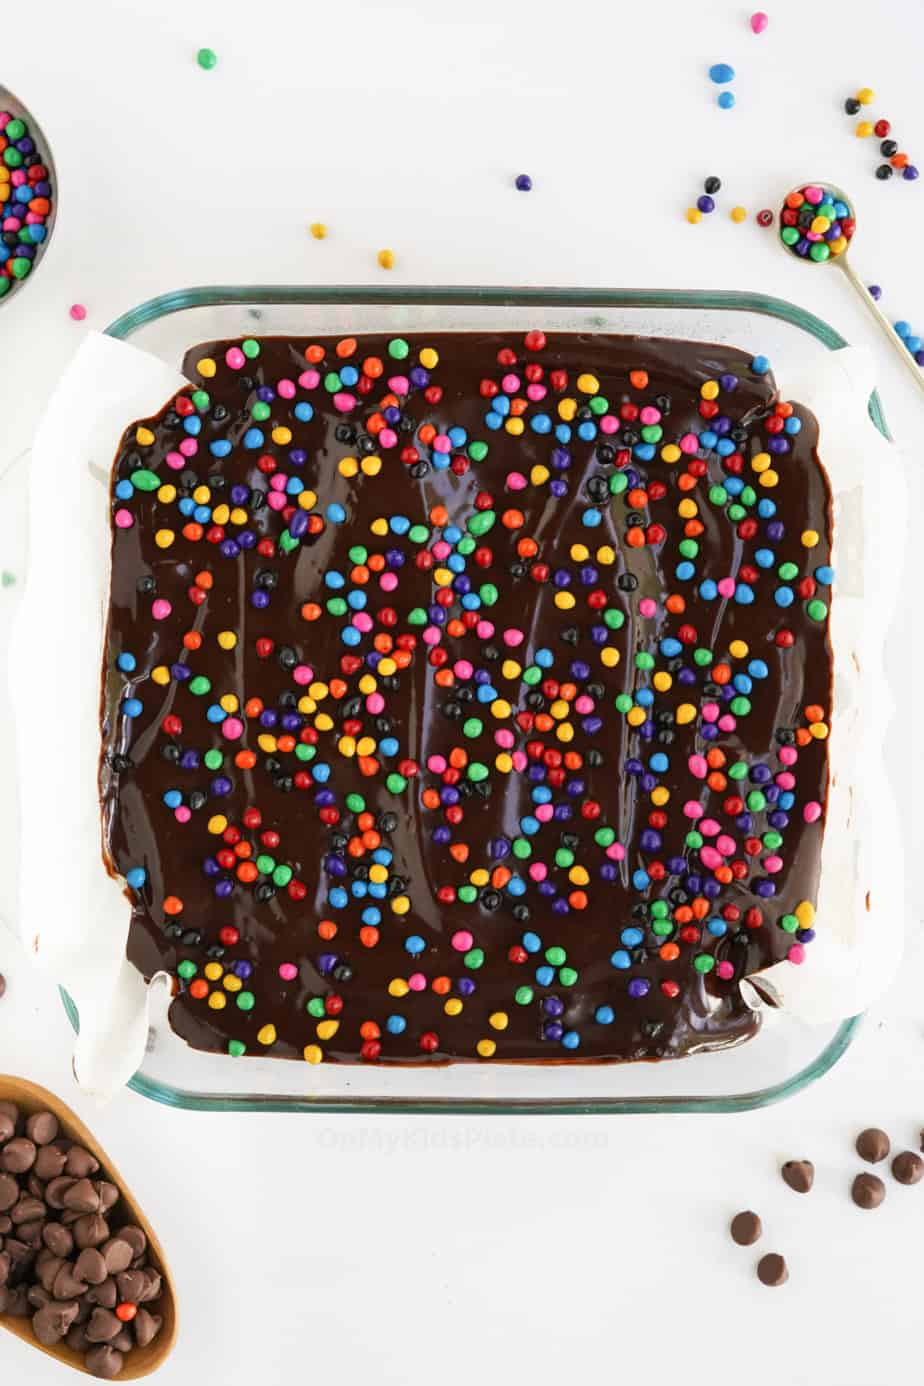 Chocolate brownies in the pan from overhead covered in chocolate frosting and rainbow crunch sprinkles.